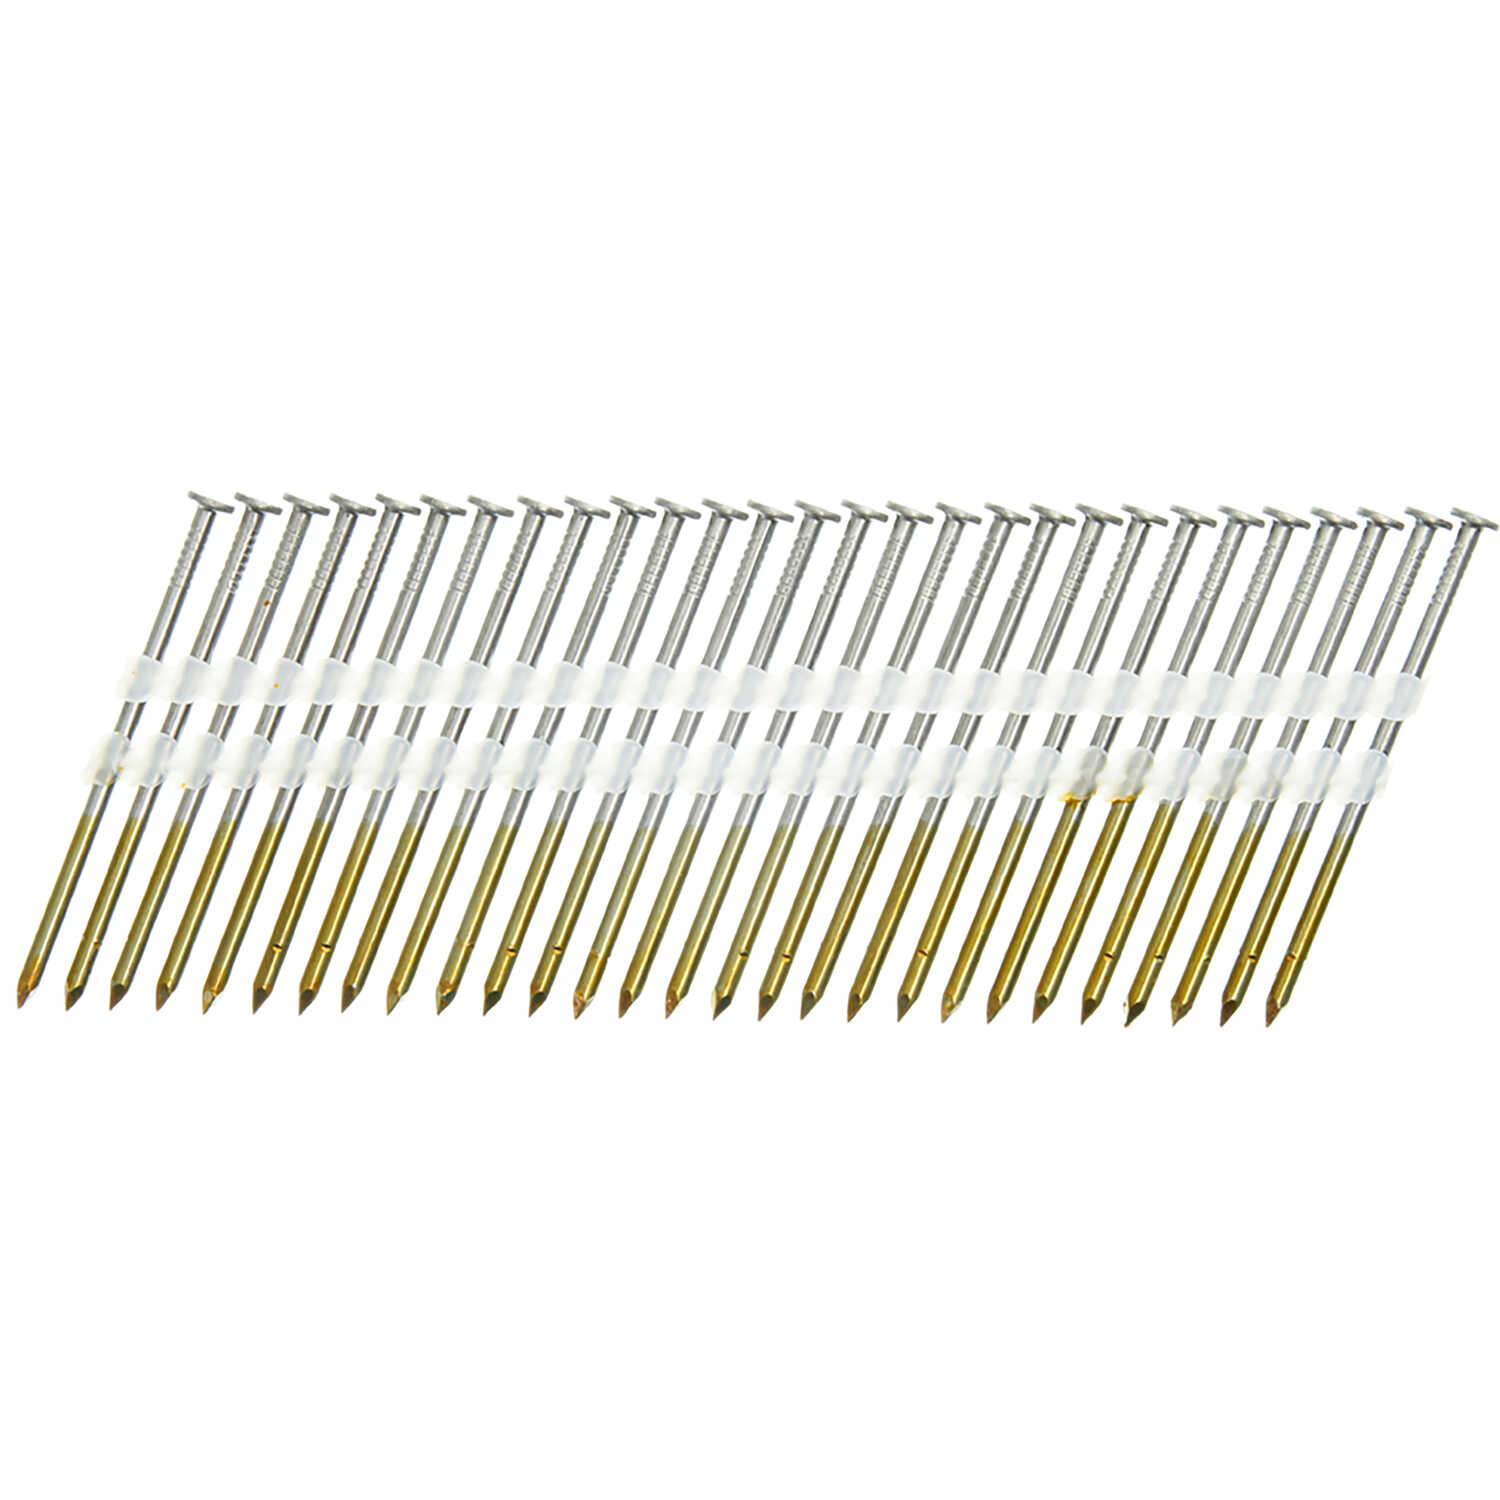 Senco  20 deg. 16 Ga. Smooth Shank  Angled Strip  Framing Nails  3 in. L x 0.11 in. Dia. 500 box